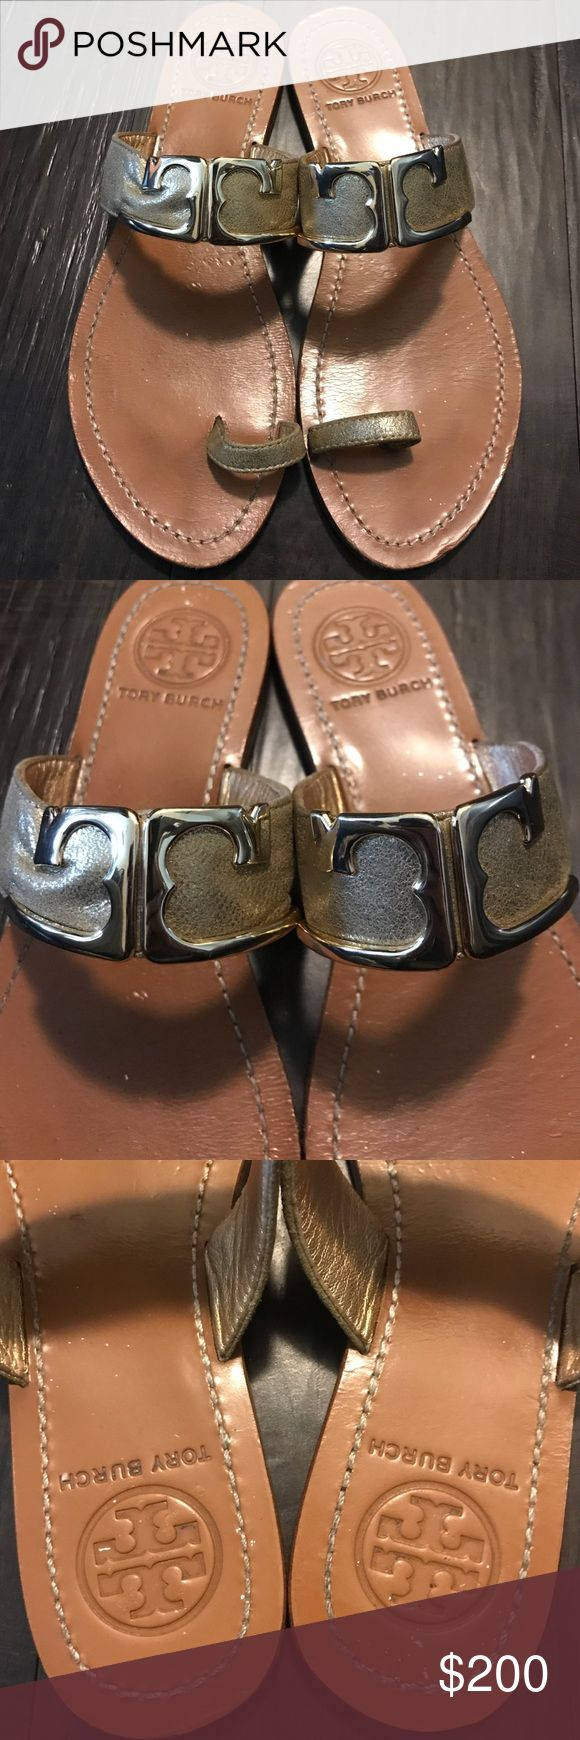 Tory burch Marcia Metallic Toe-Ring Sandal, Gold Have been wore a few times, in great condition. No box no trades Tory Burch Shoes Sandals